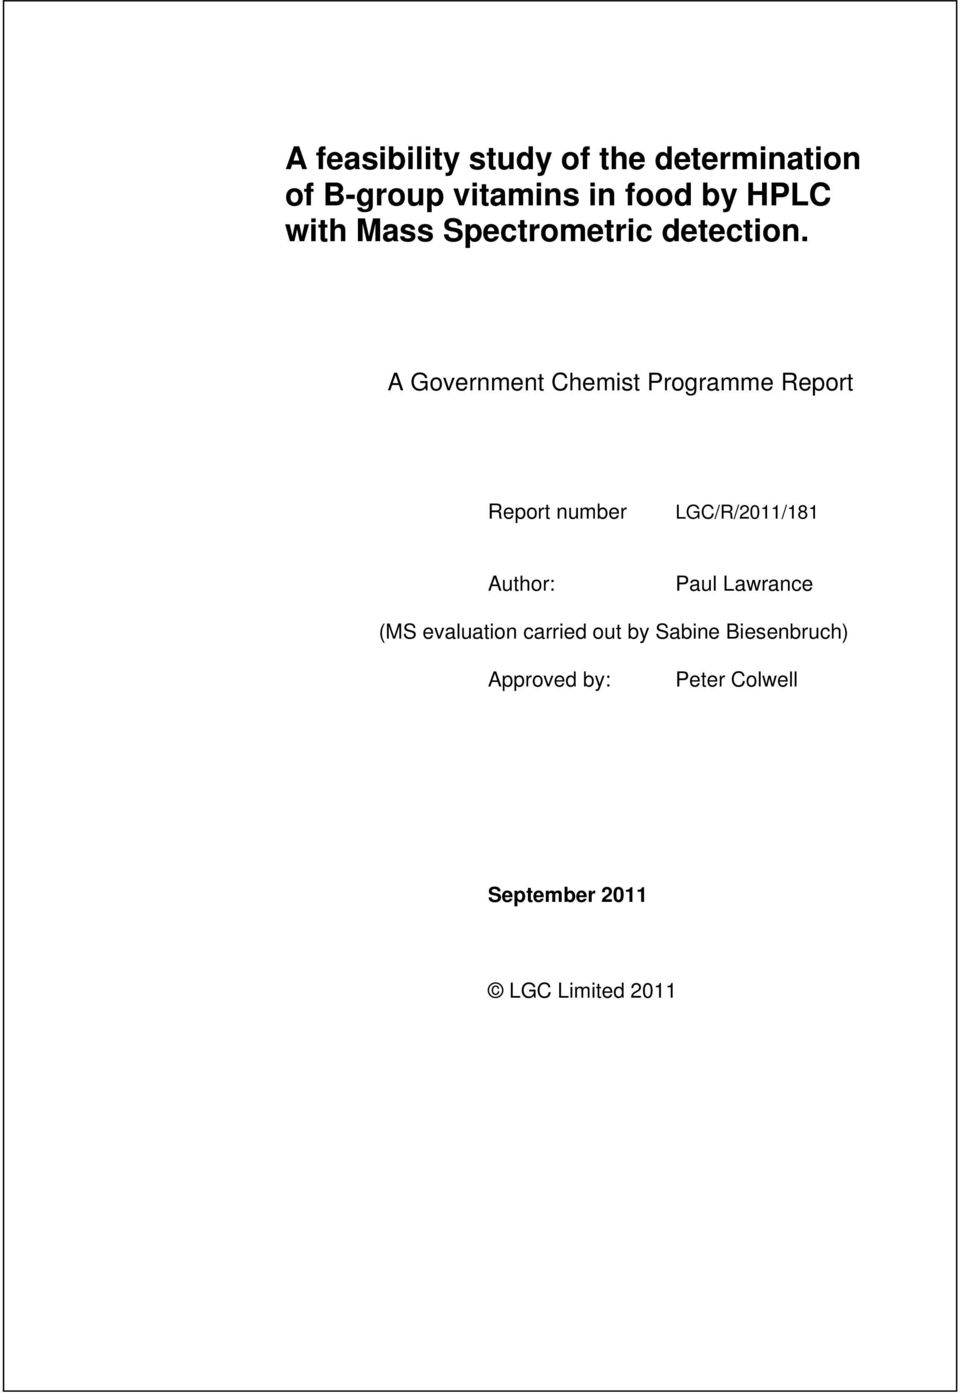 A Government Chemist Programme Report Report number LGC/R/2011/181 Author: